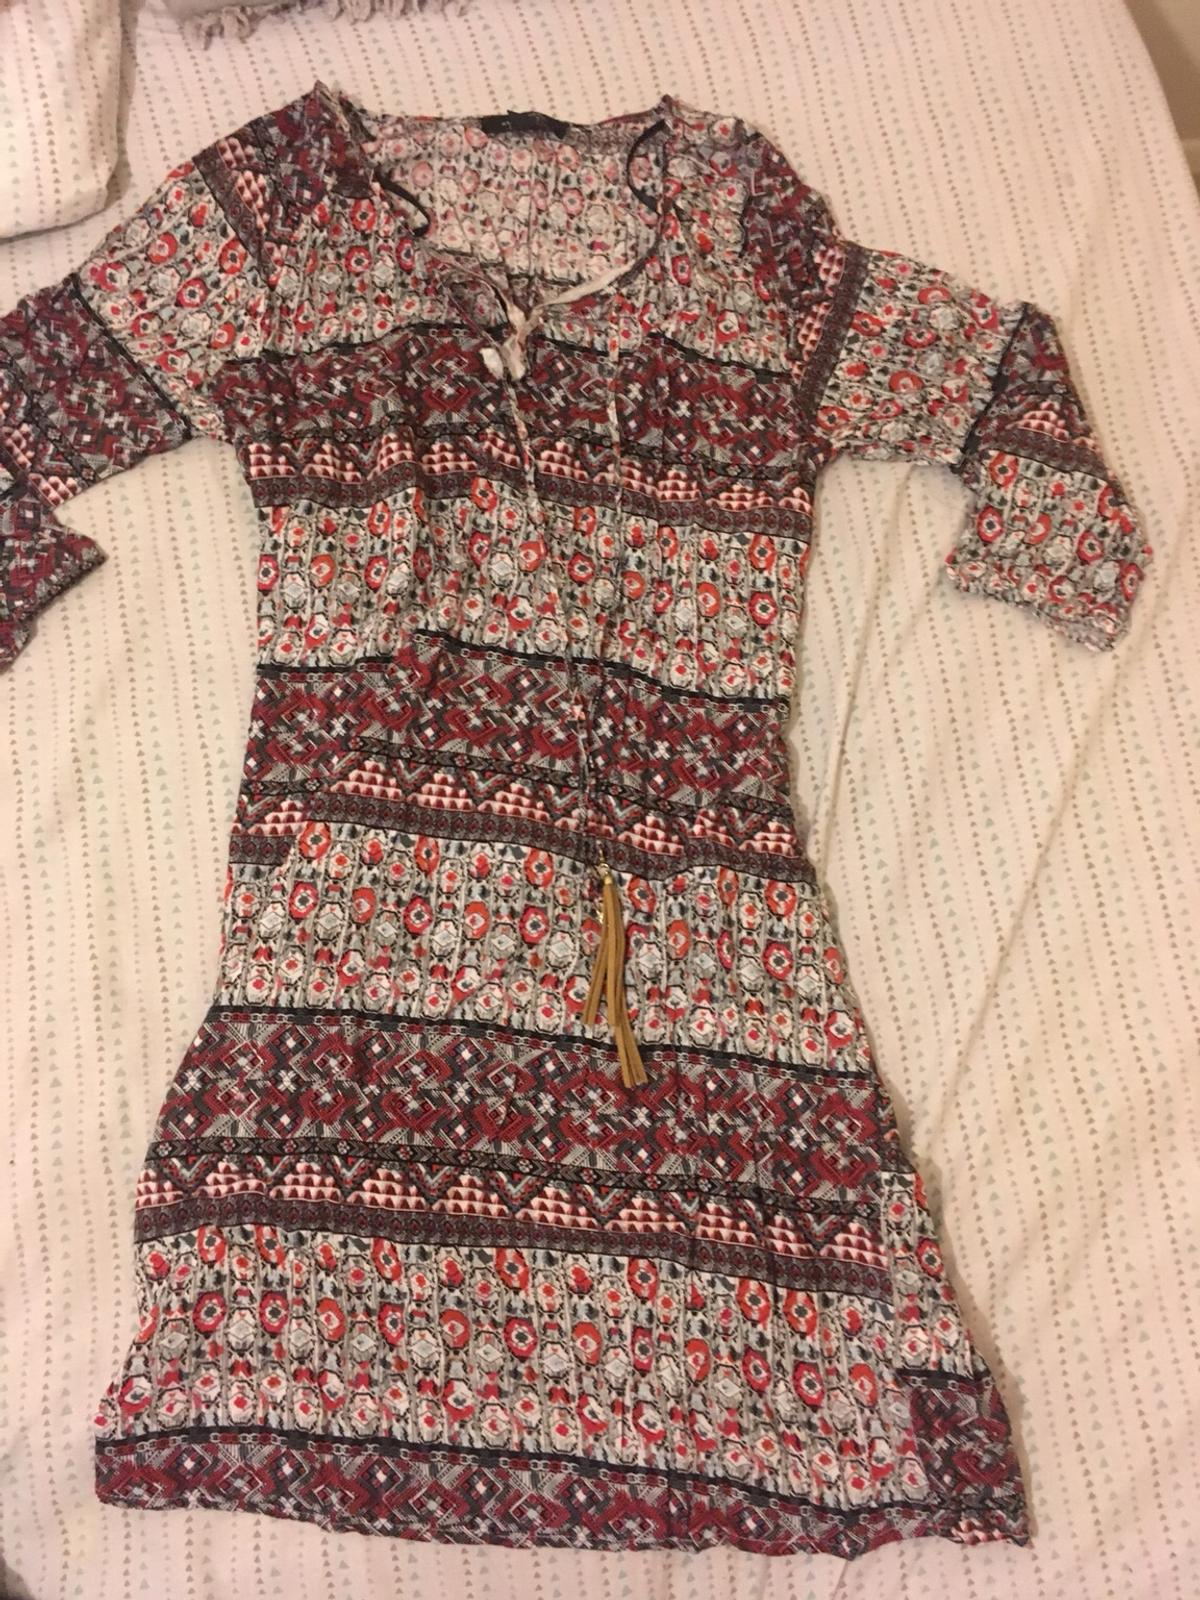 Size 14 Worn once or twice, next to new condition £6 Collection from B31